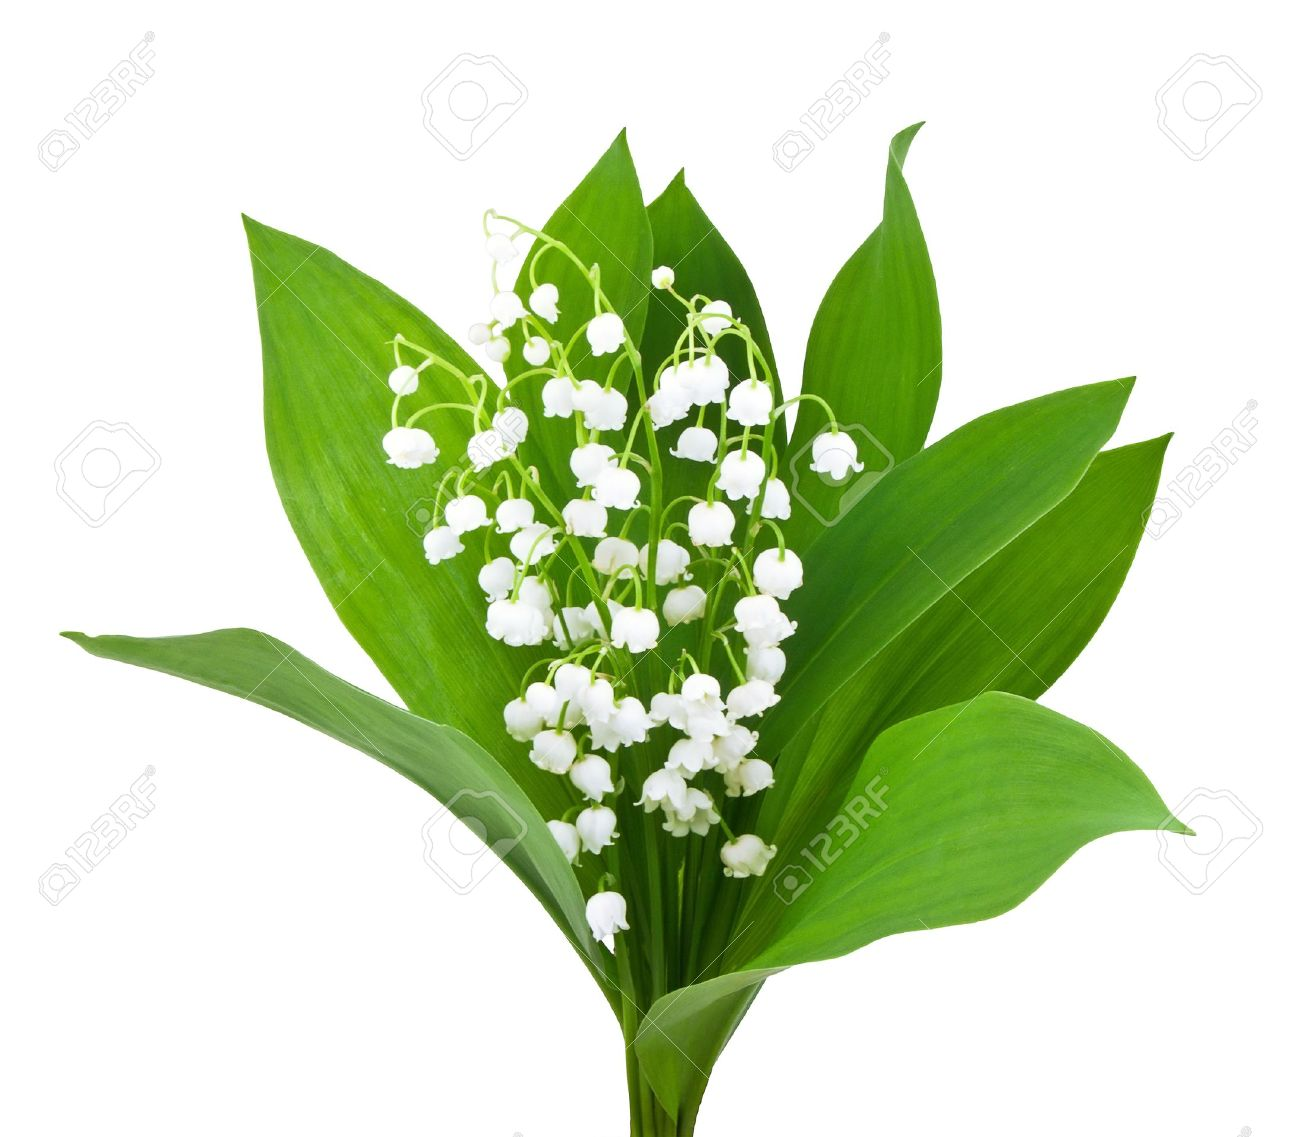 Lily Of The Valley Stock Photos Royalty Free Lily Of The Valley Images